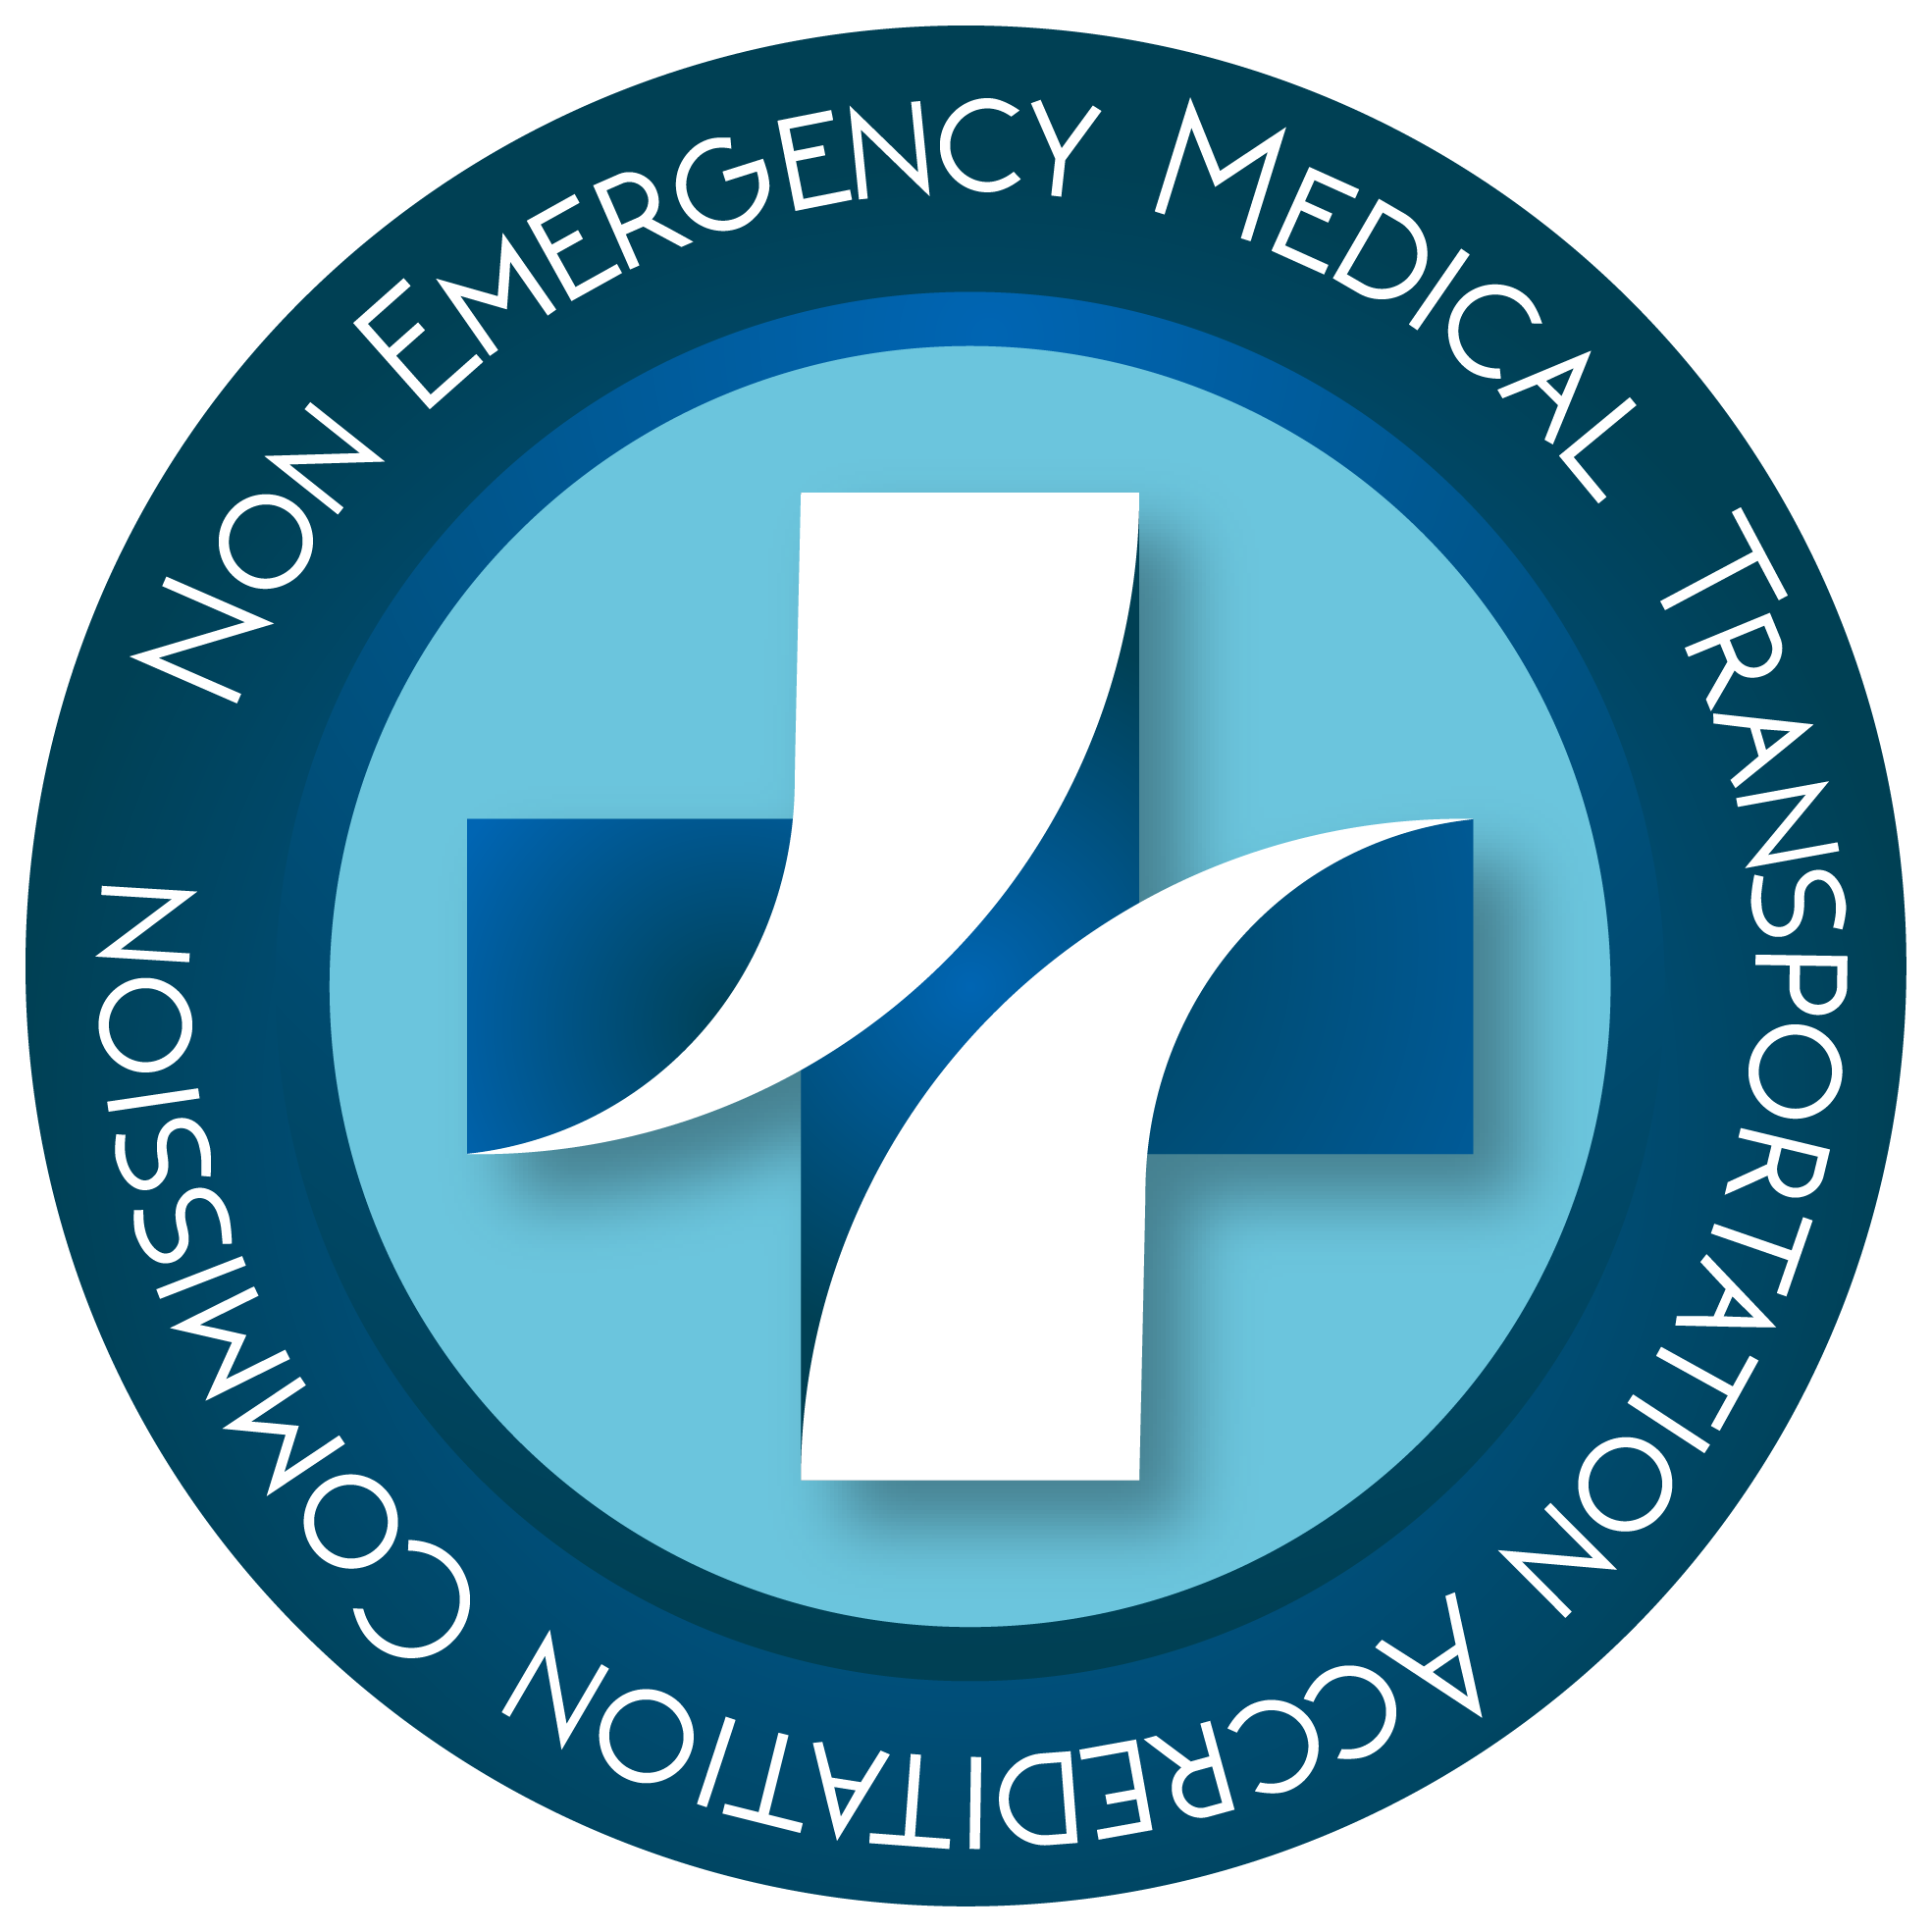 Non Emergency Medical Transportation Accreditation Submitted by M. Shabkie